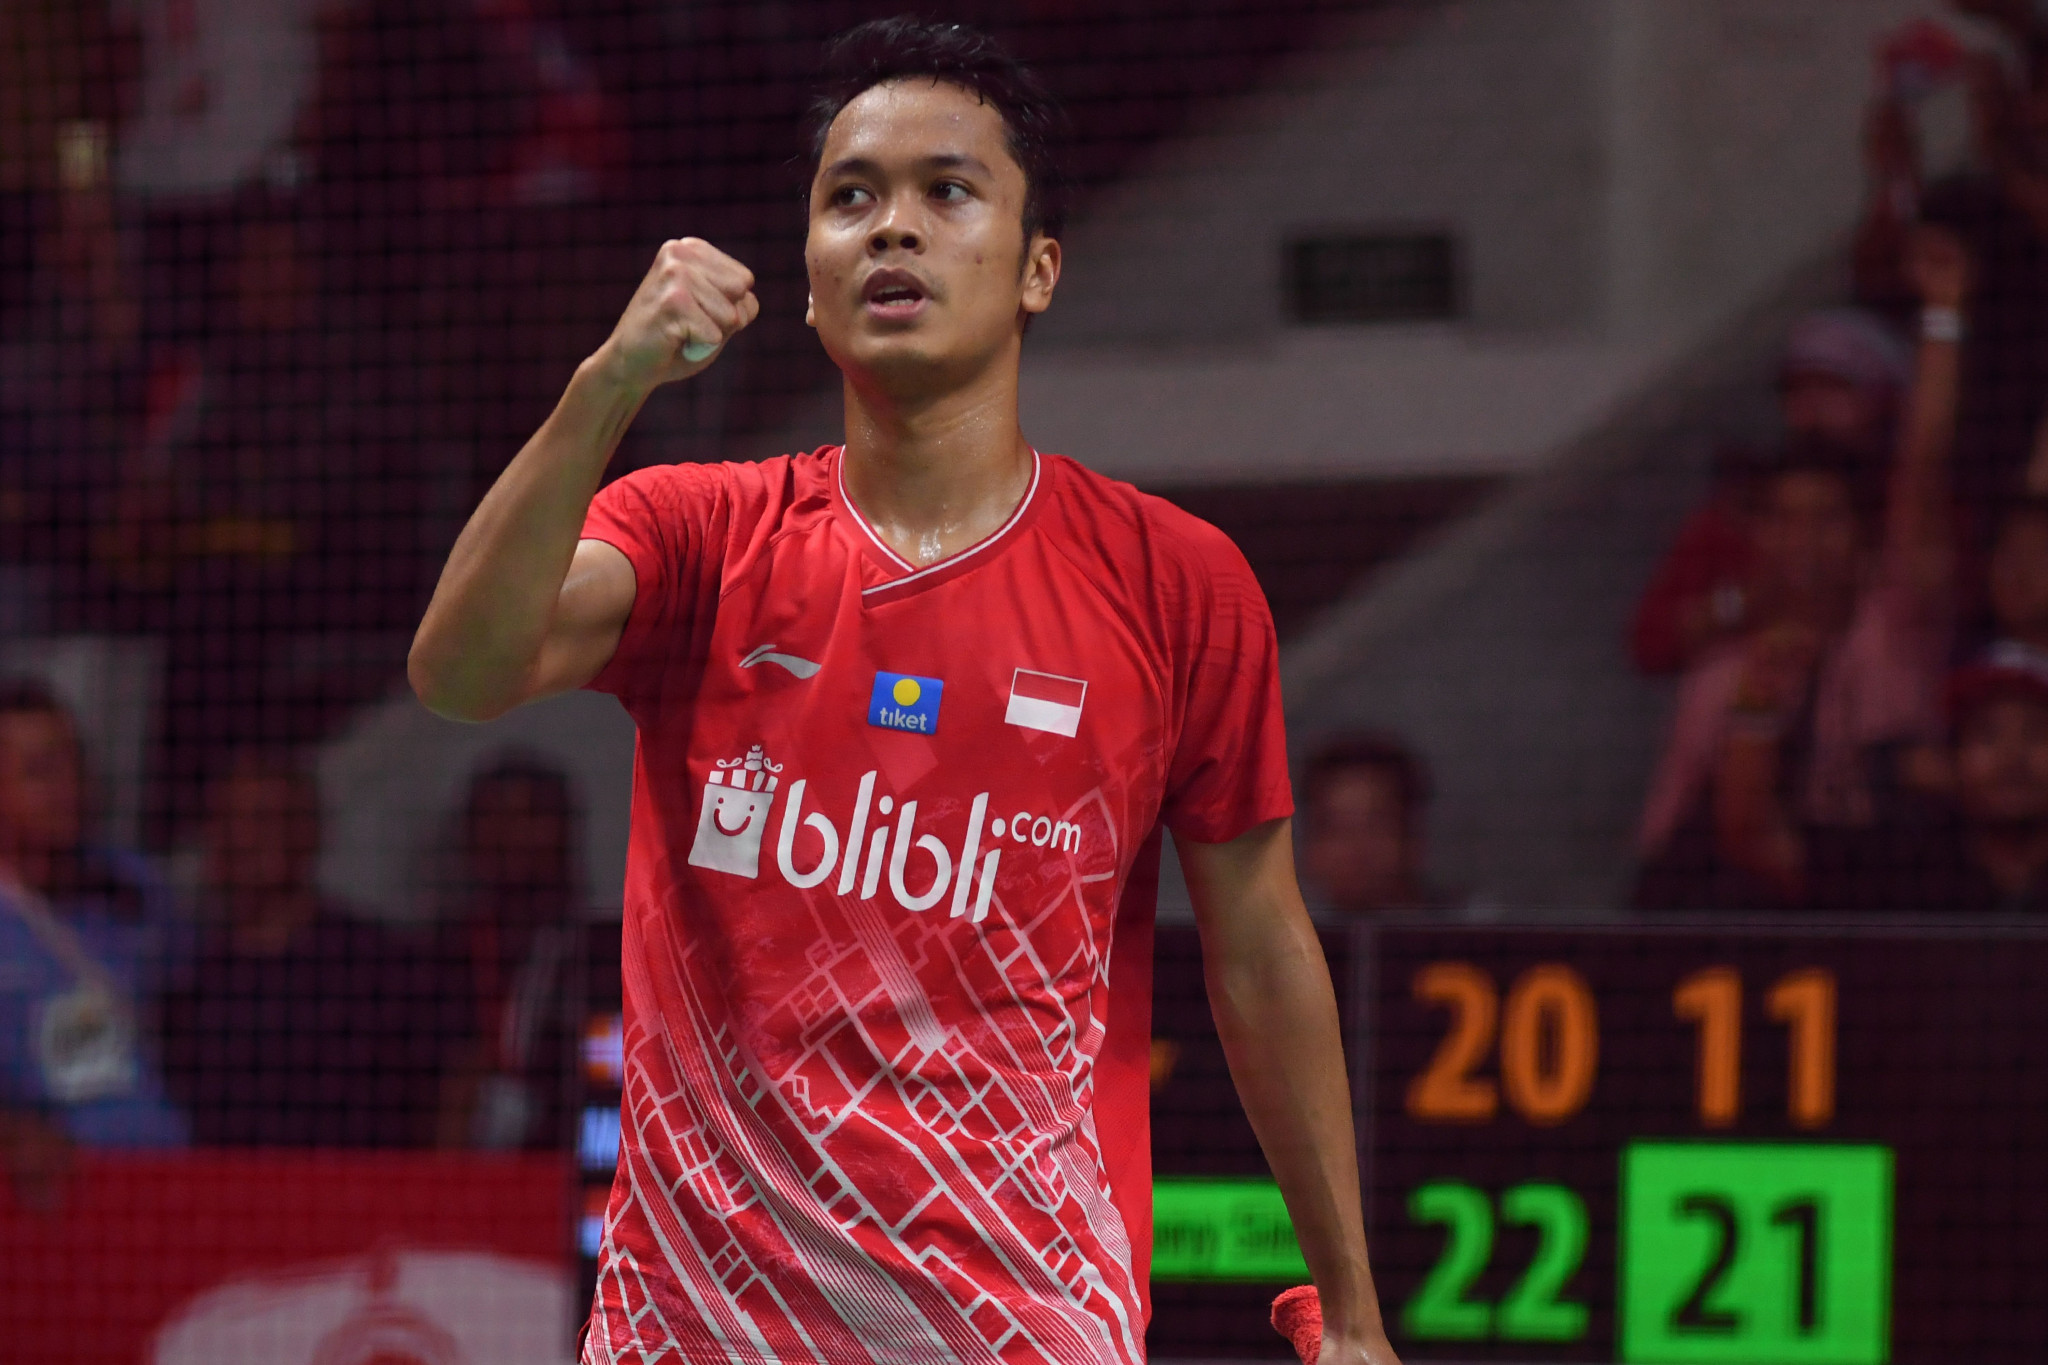 Home player Ginting to face defending champion Antonsen in BWF Indonesia Masters final